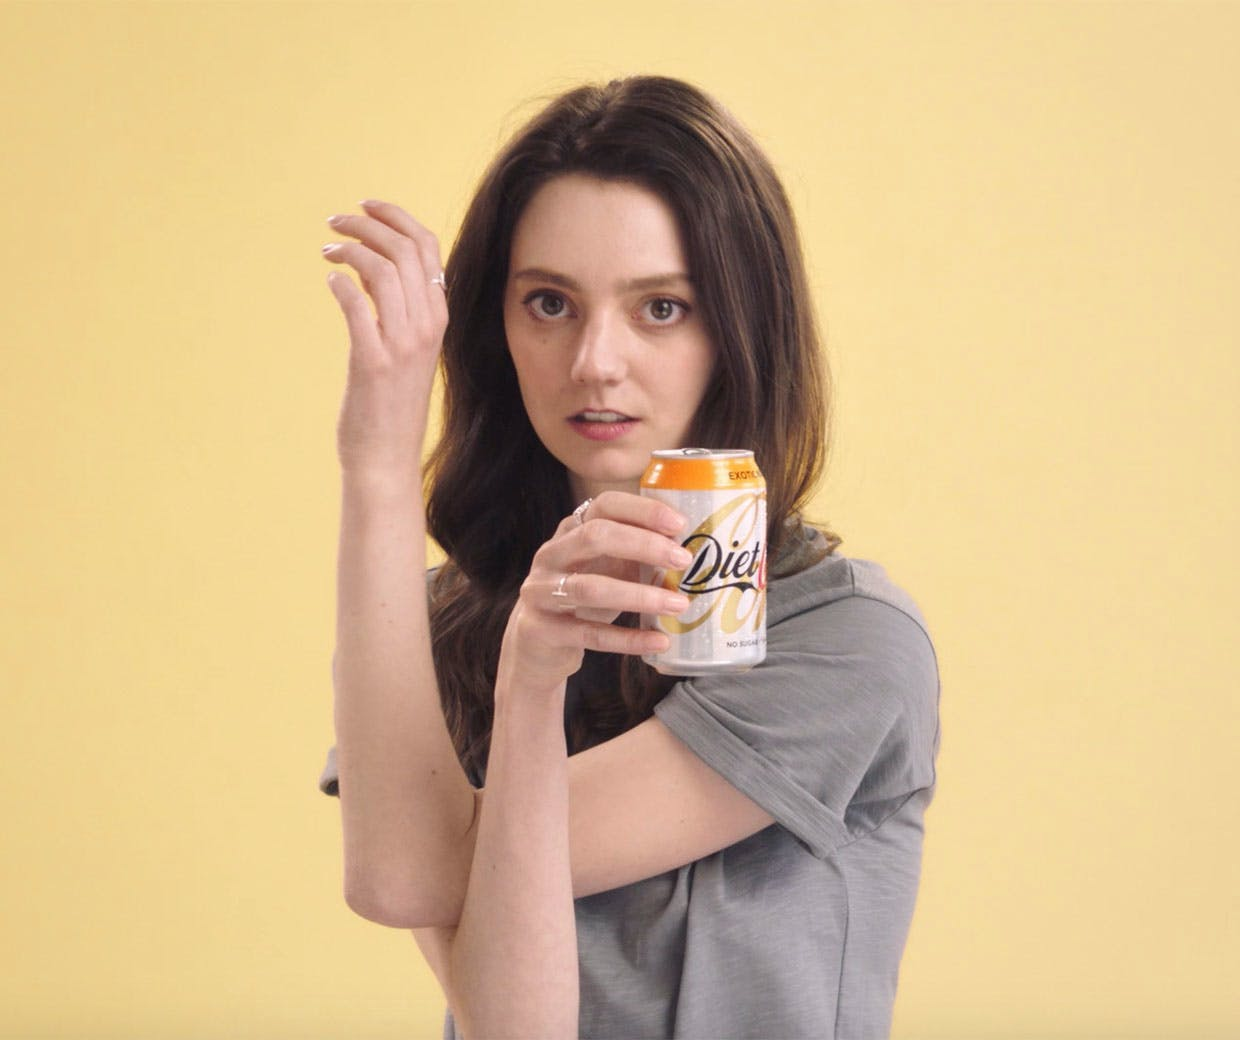 Coca-Cola highlights its innovation credentials in campaign for new Diet Coke flavours